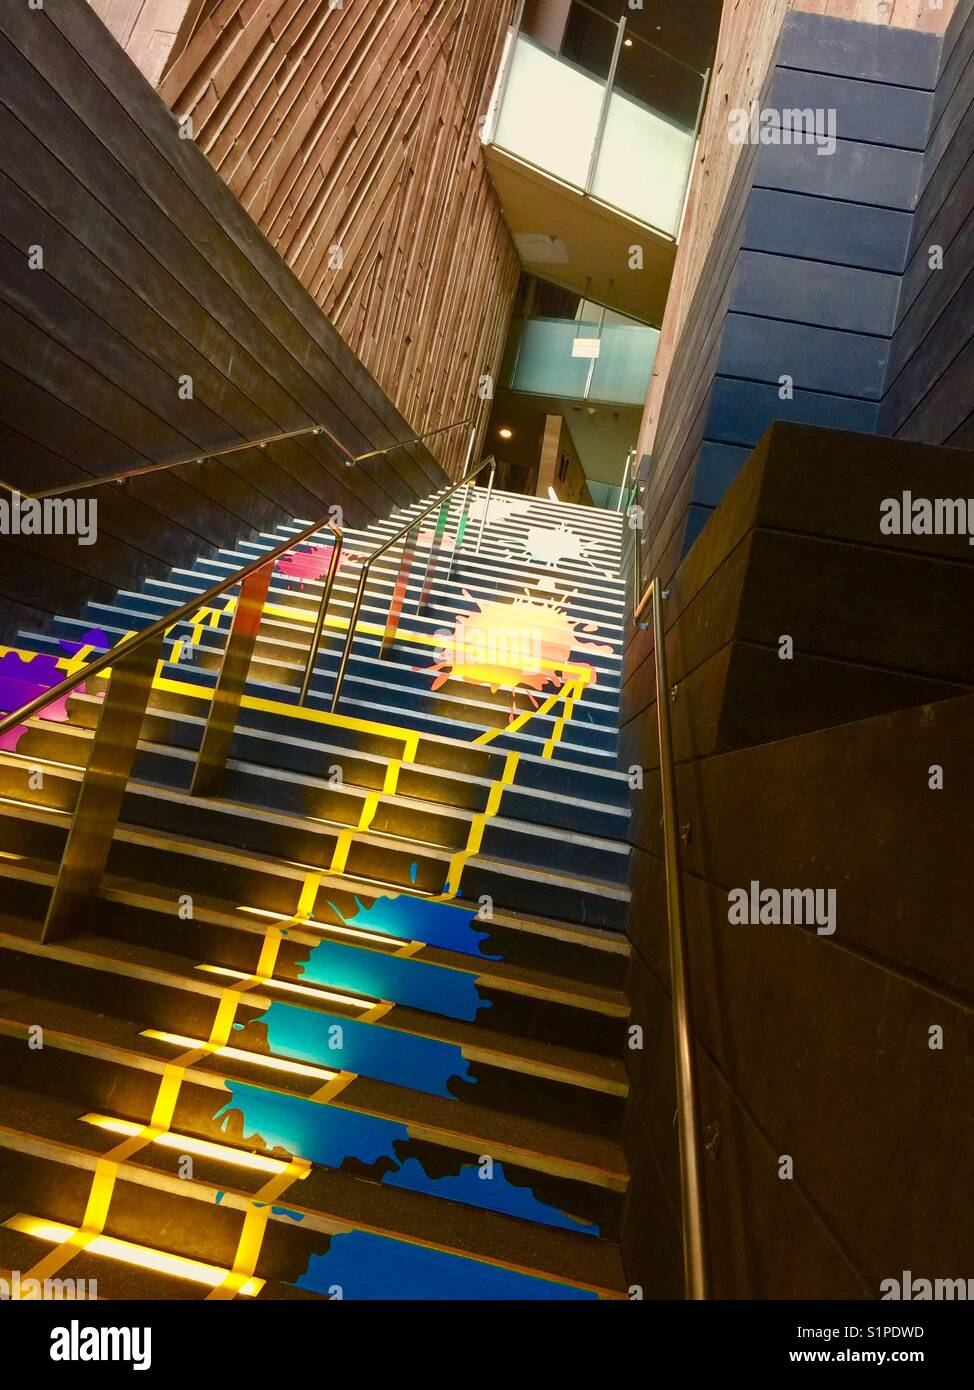 Colourful flight of stairs - Stock Image